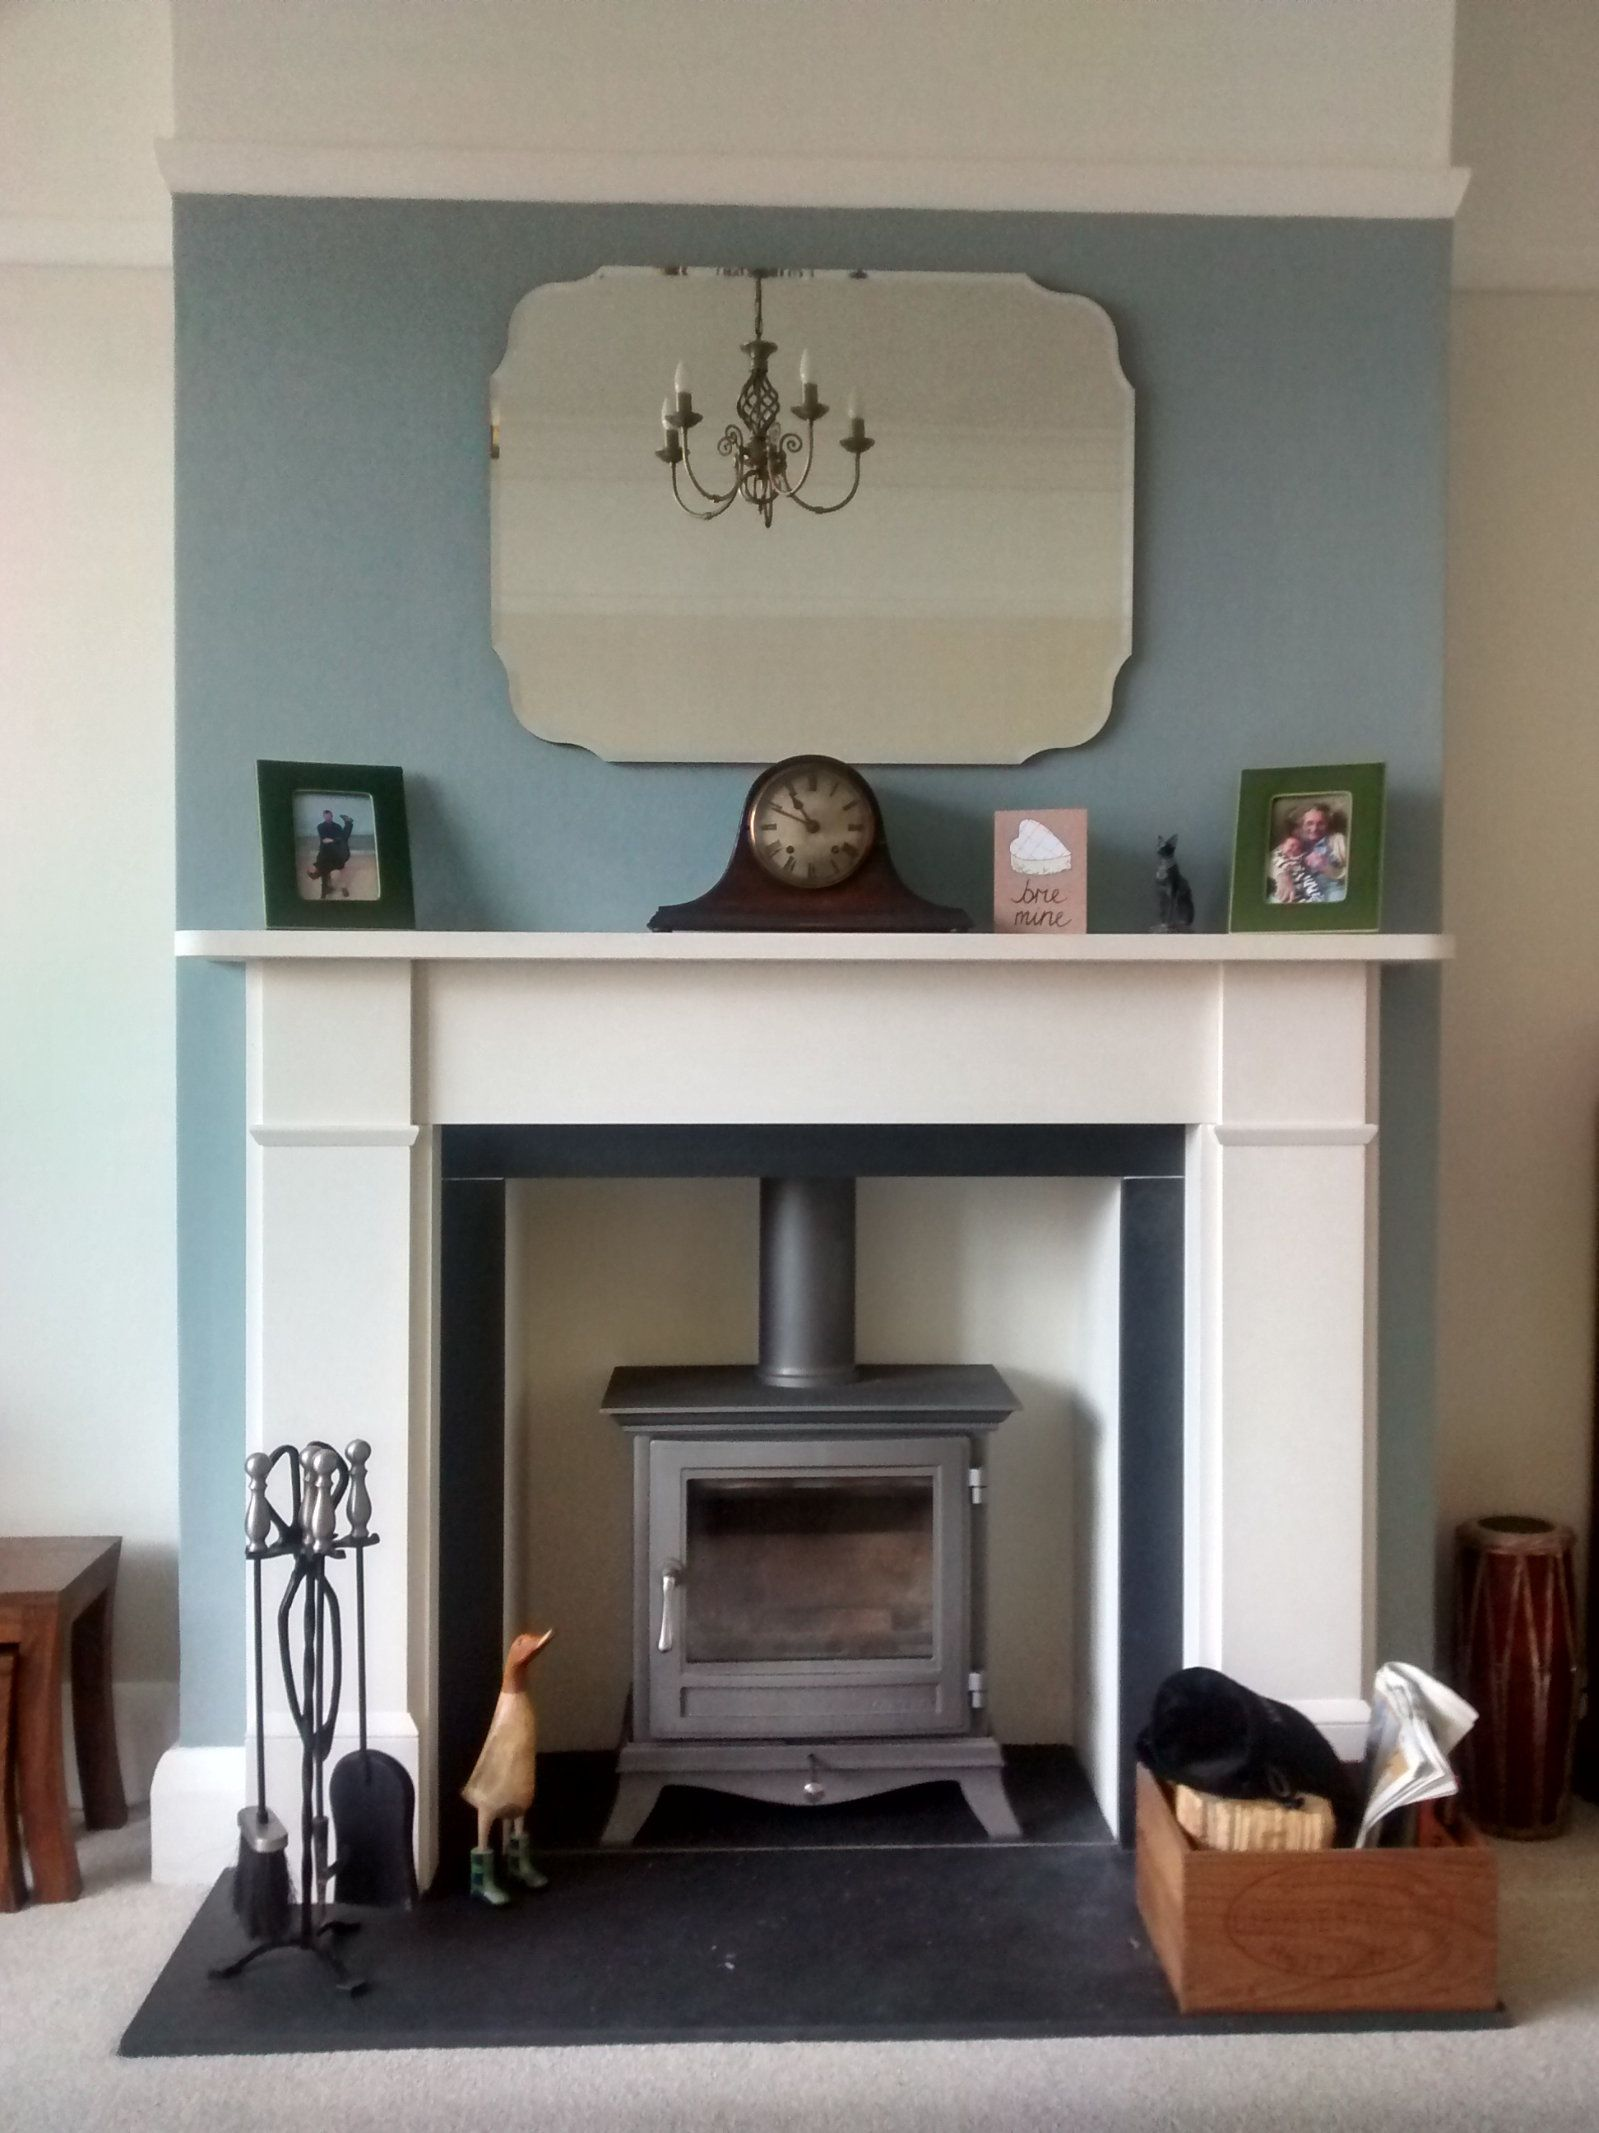 Tiled fireplace transformation | Heart Woodburners ...